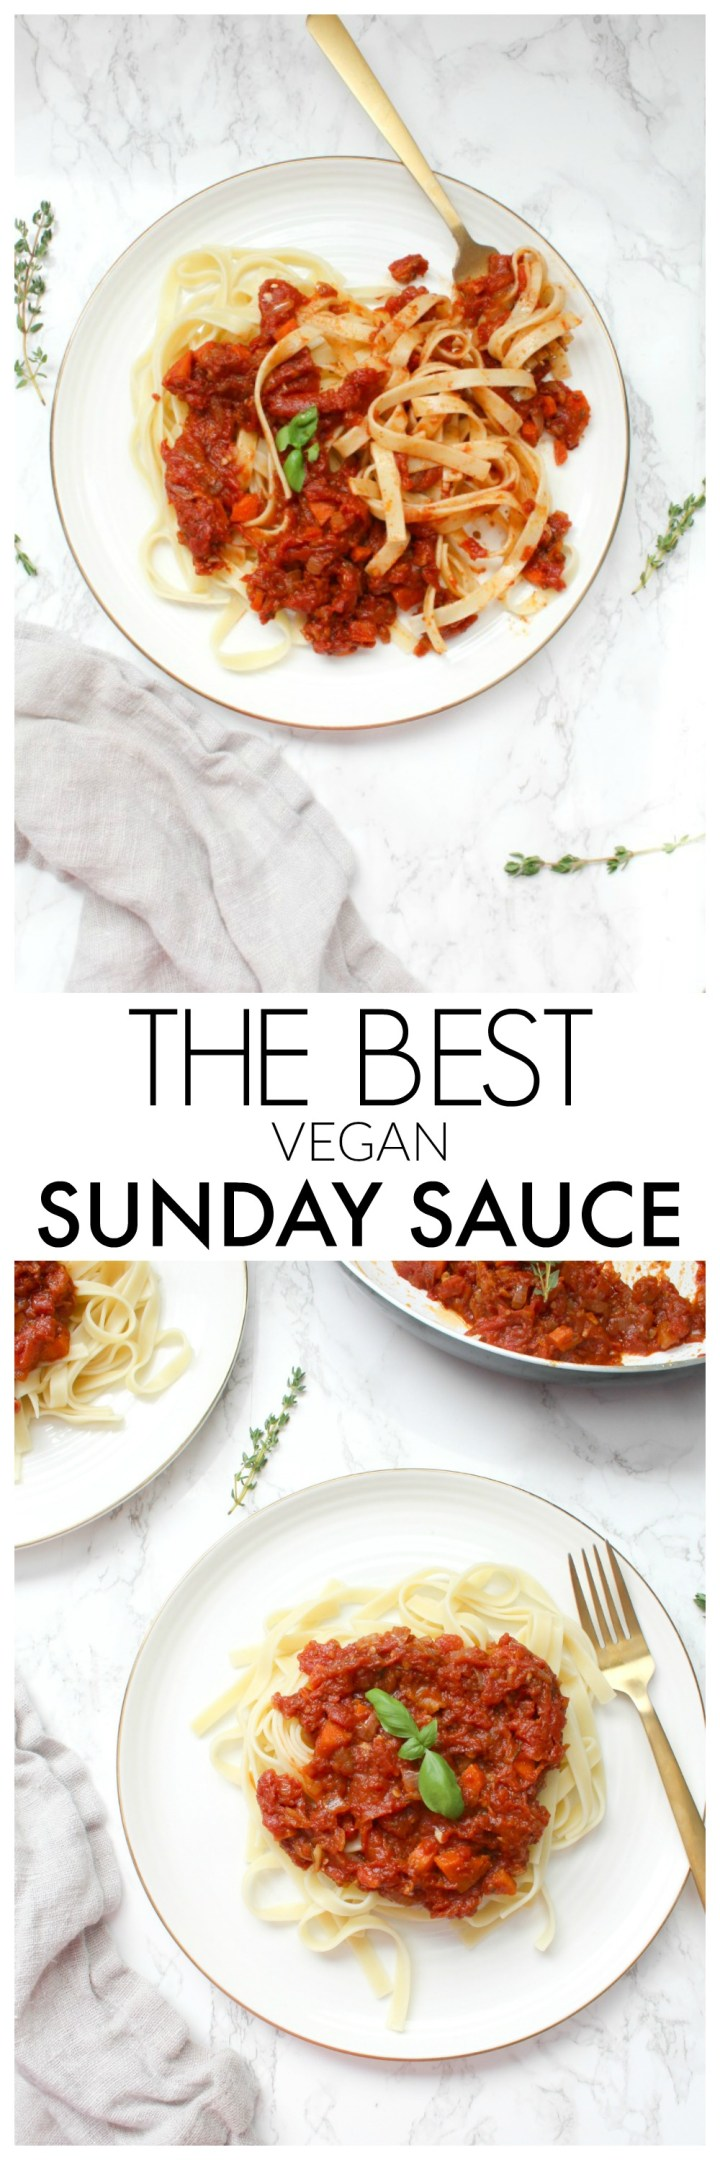 This Vegan Sunday Sauce is slow cooked on the stove all day long and is rich and flavor packed. The perfect Sunday dinner | ThisSavoryVegan.com #thissavoryvegan #pasta #vegansauce